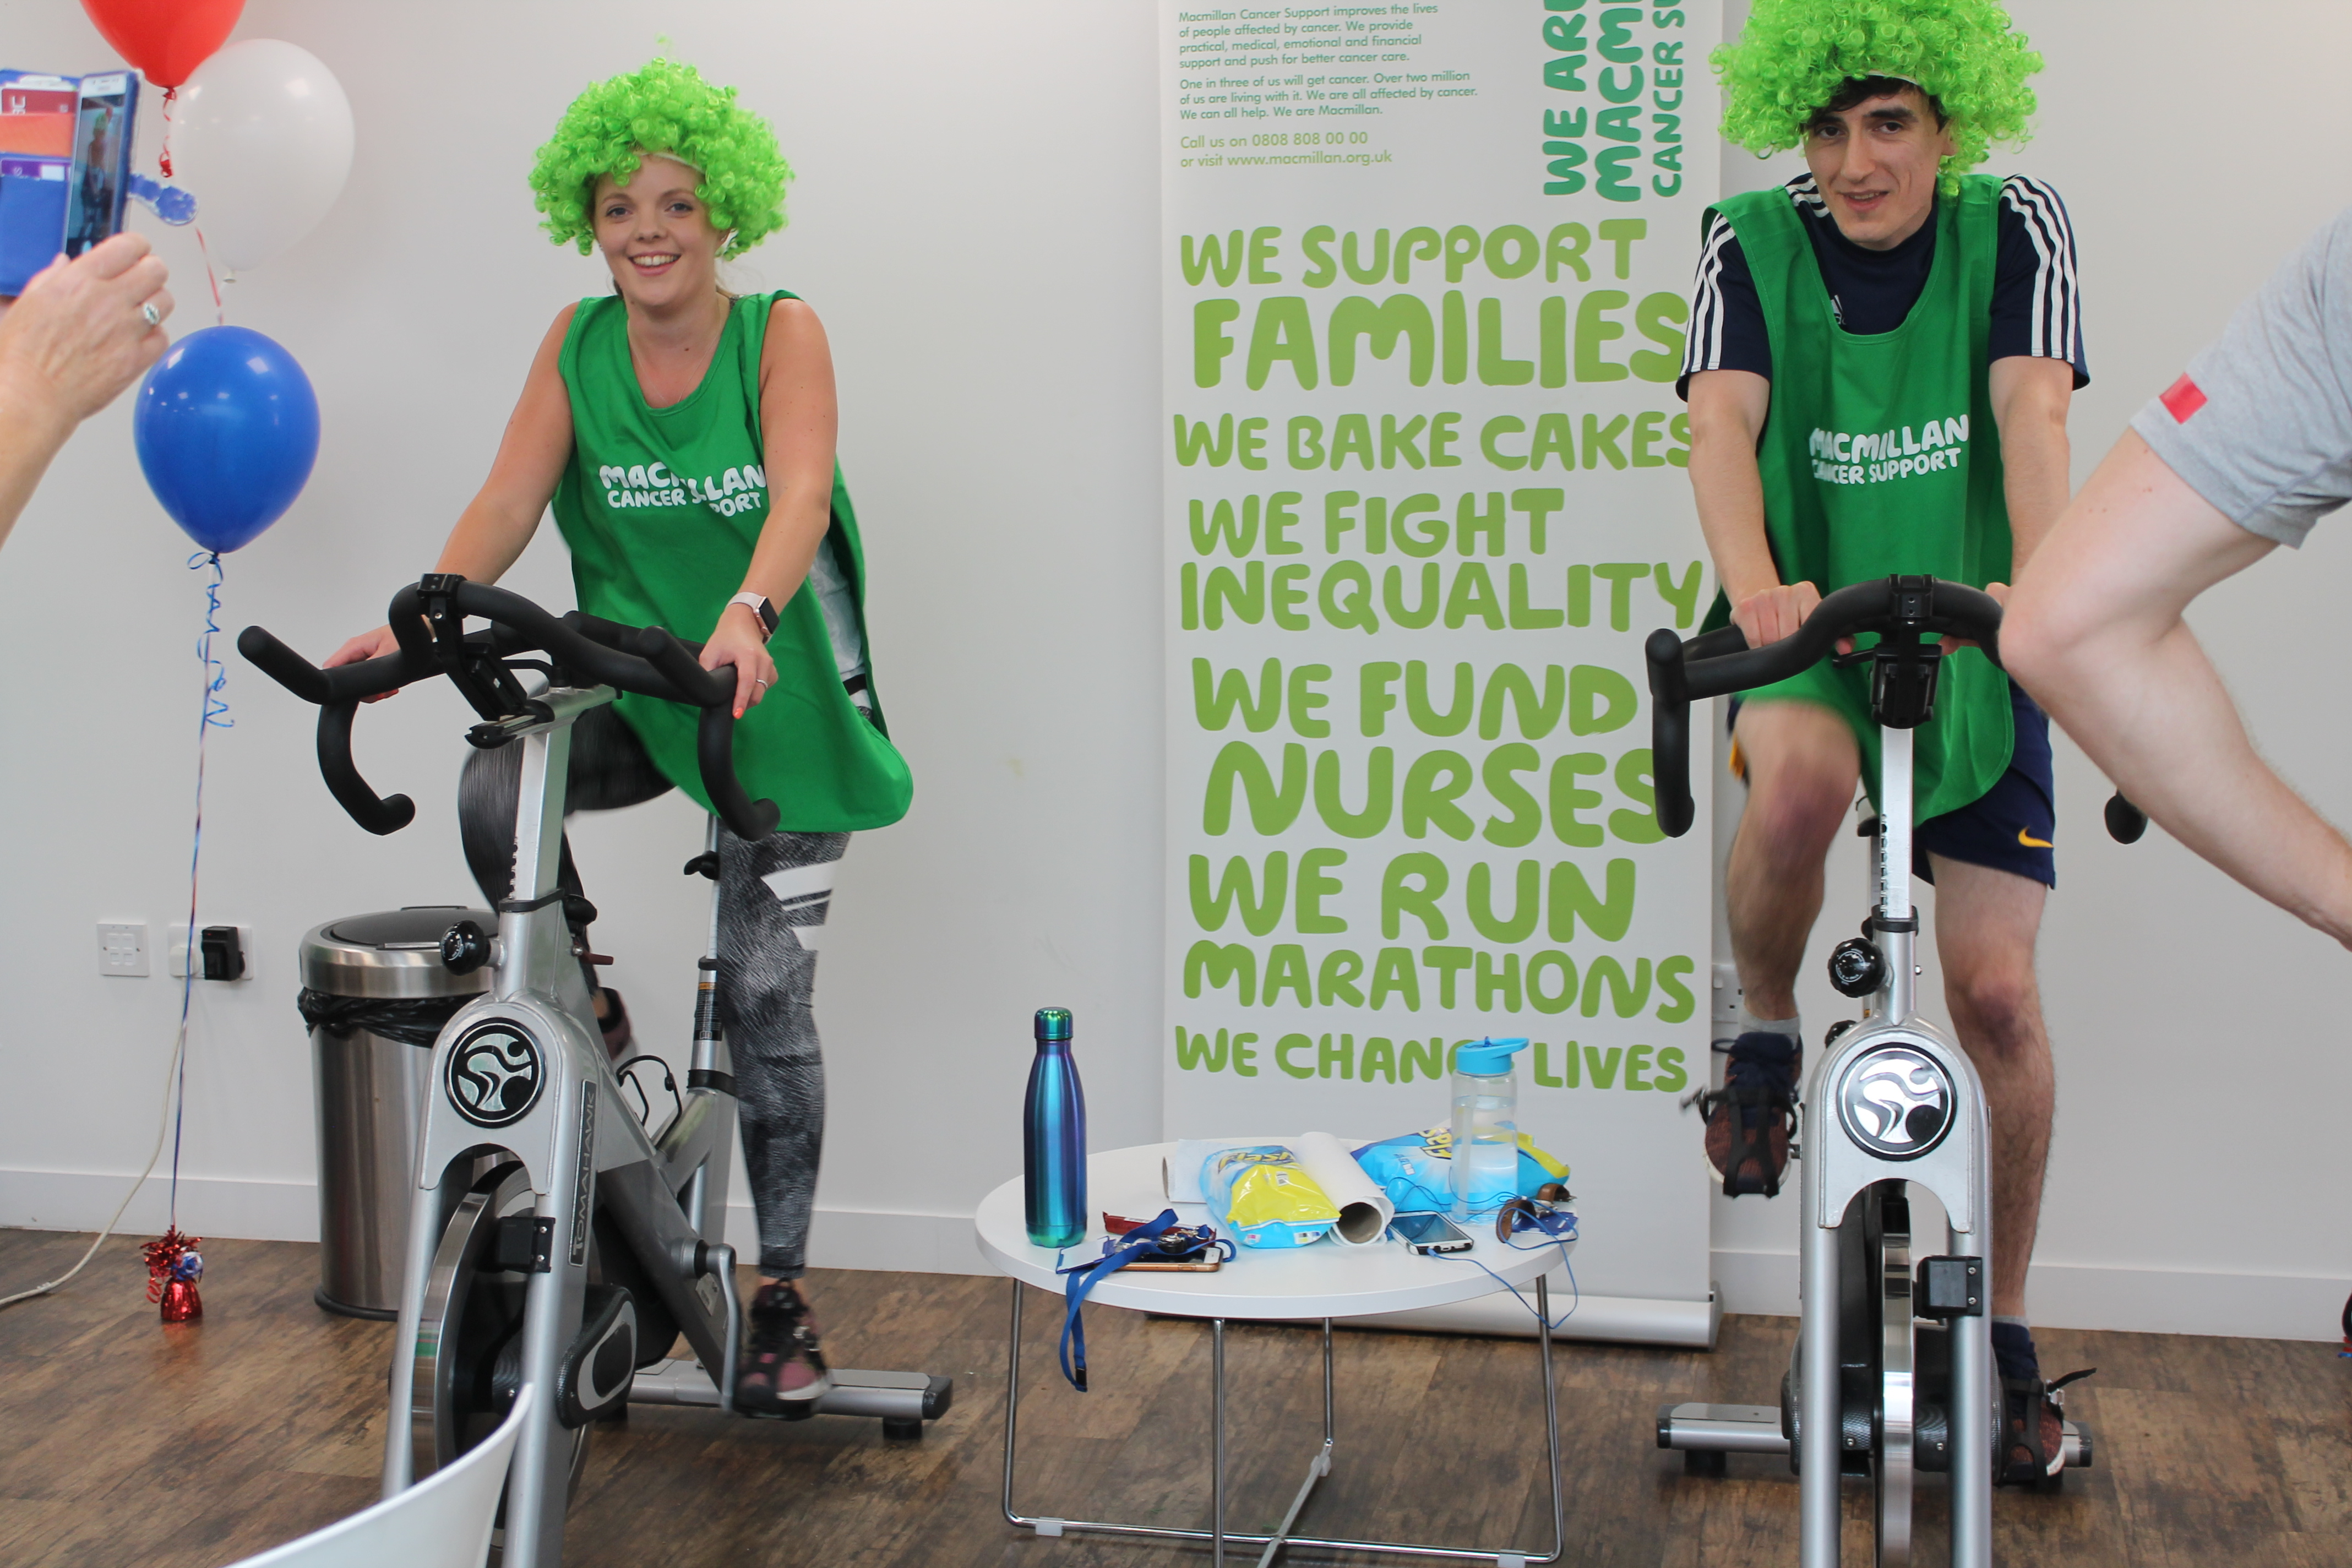 CliniMed staff riding on the training bikes whilst wearing green wigs